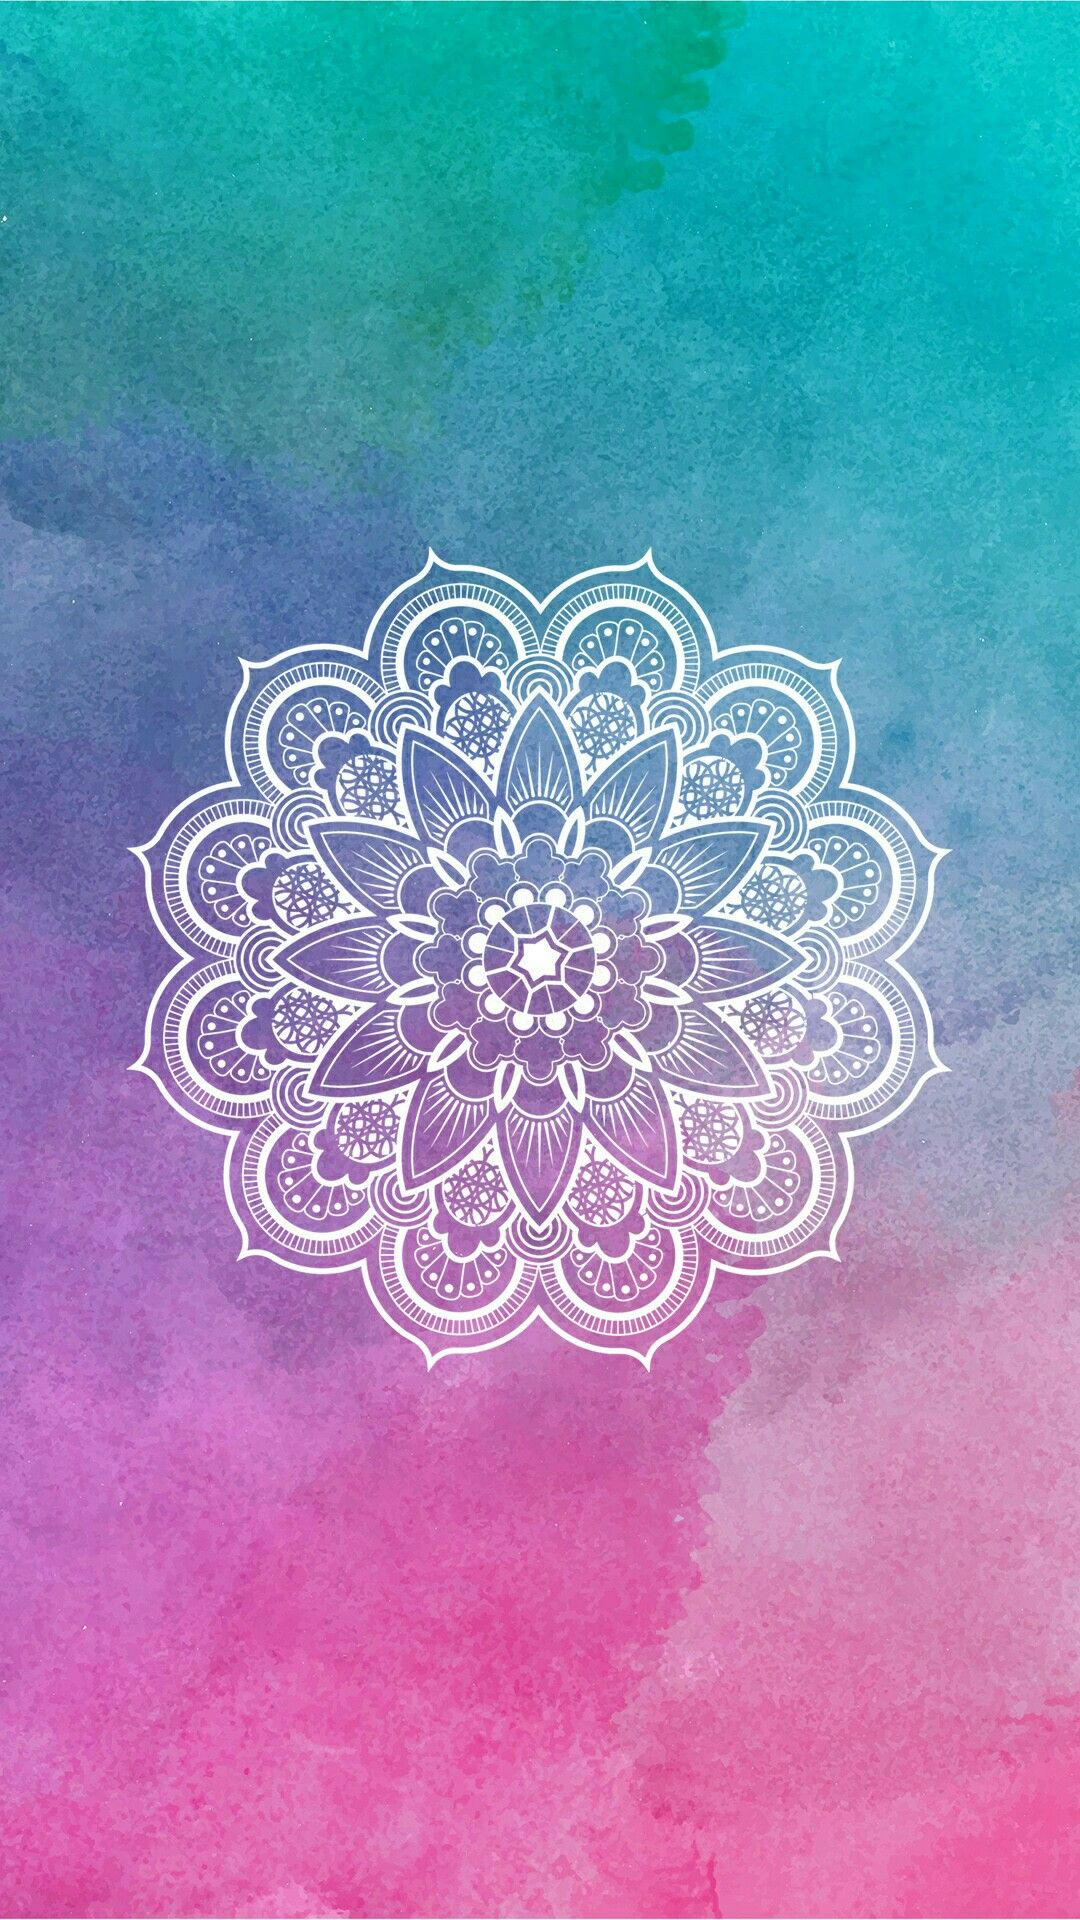 Mandala Wallpaper lockscreen colorido Fondos para iphone